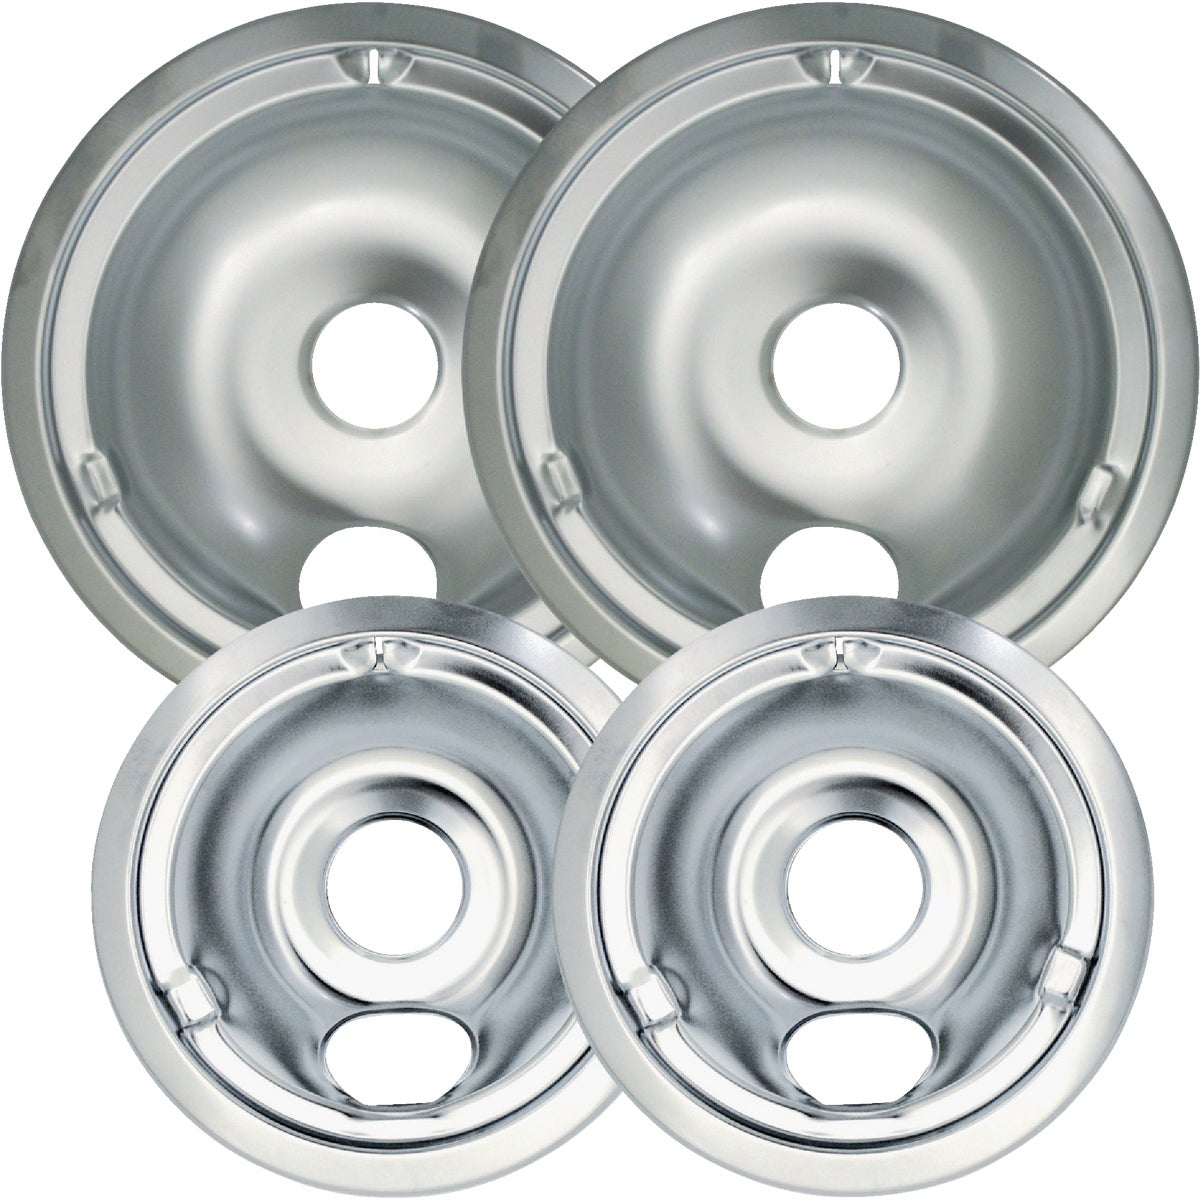 4PK DRIP PAN - 10784X by Range Kleen Mfg Inc